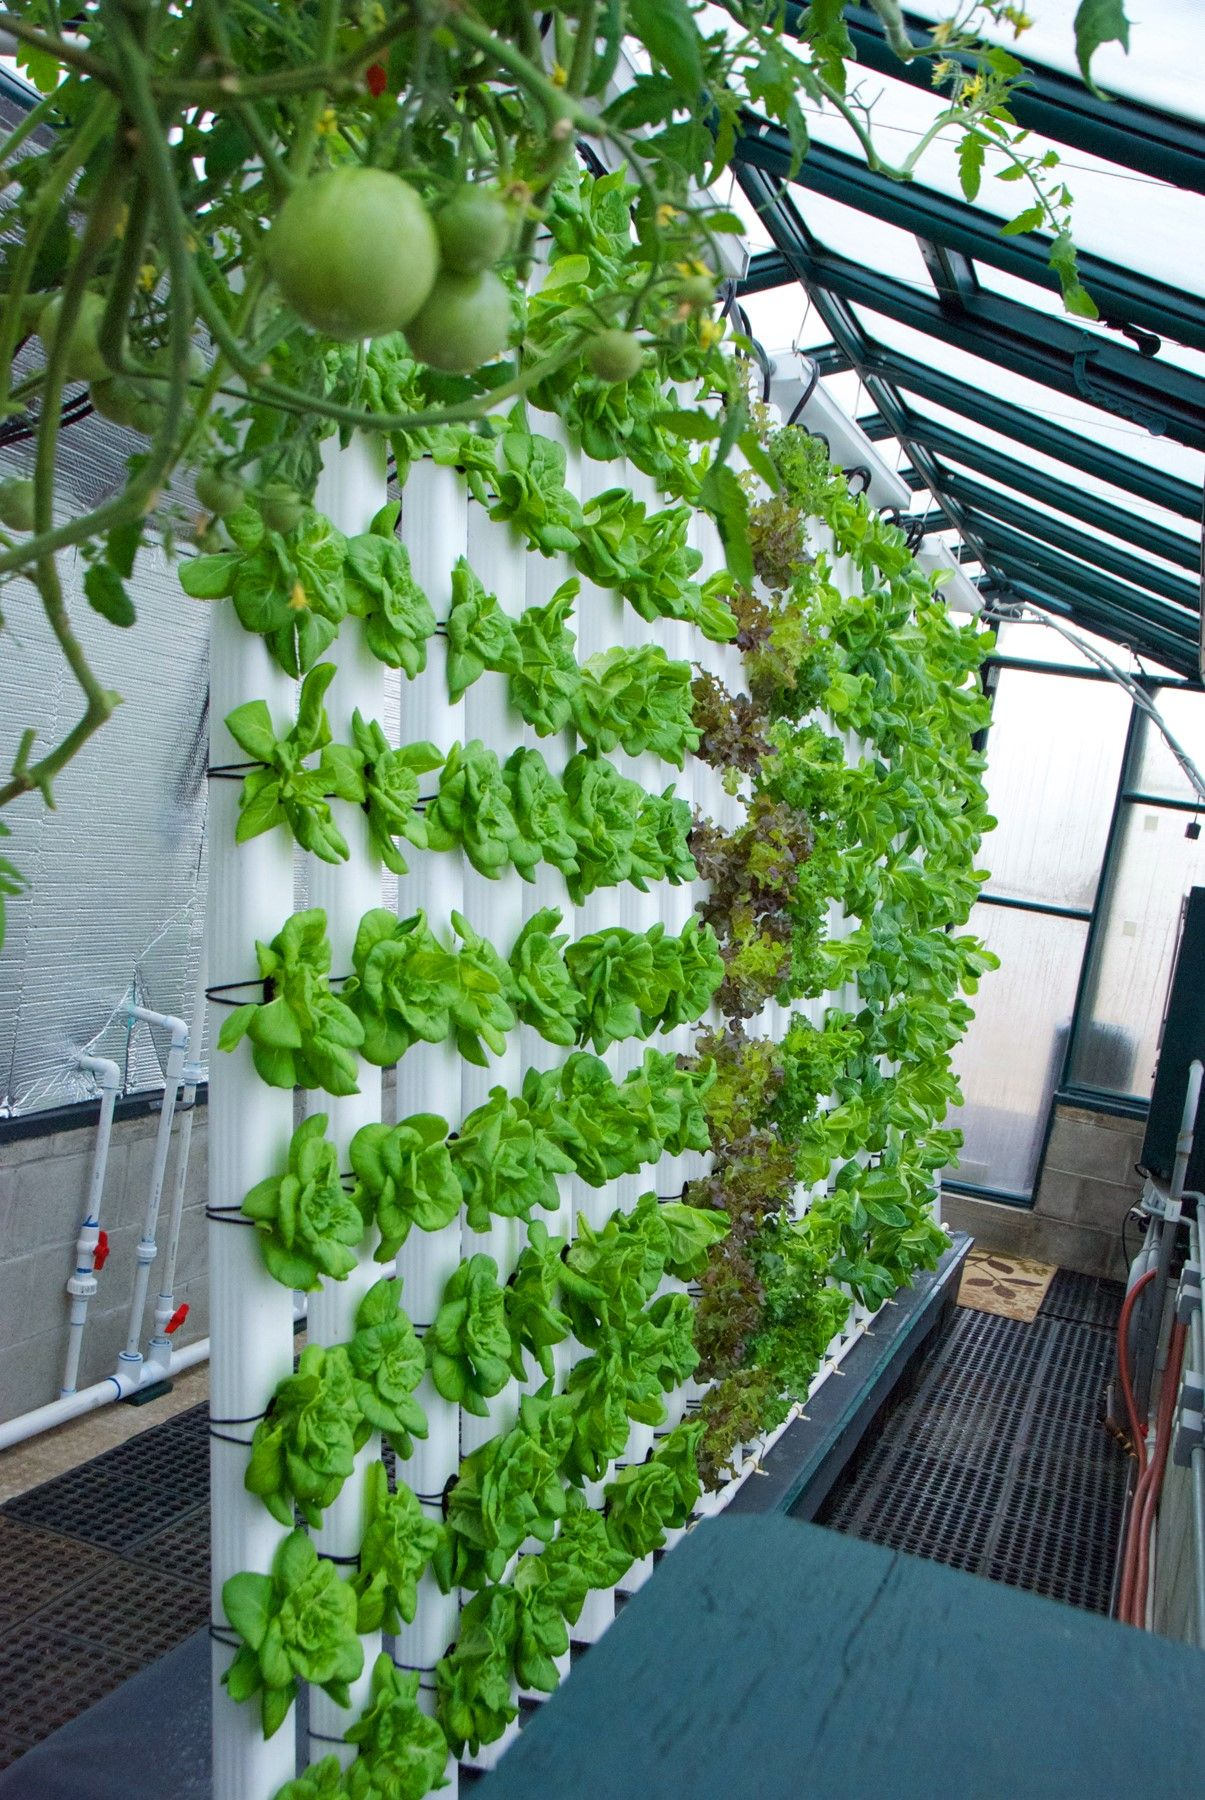 Our 80 U00ba Vertical Aquaponics System Is All About Saving